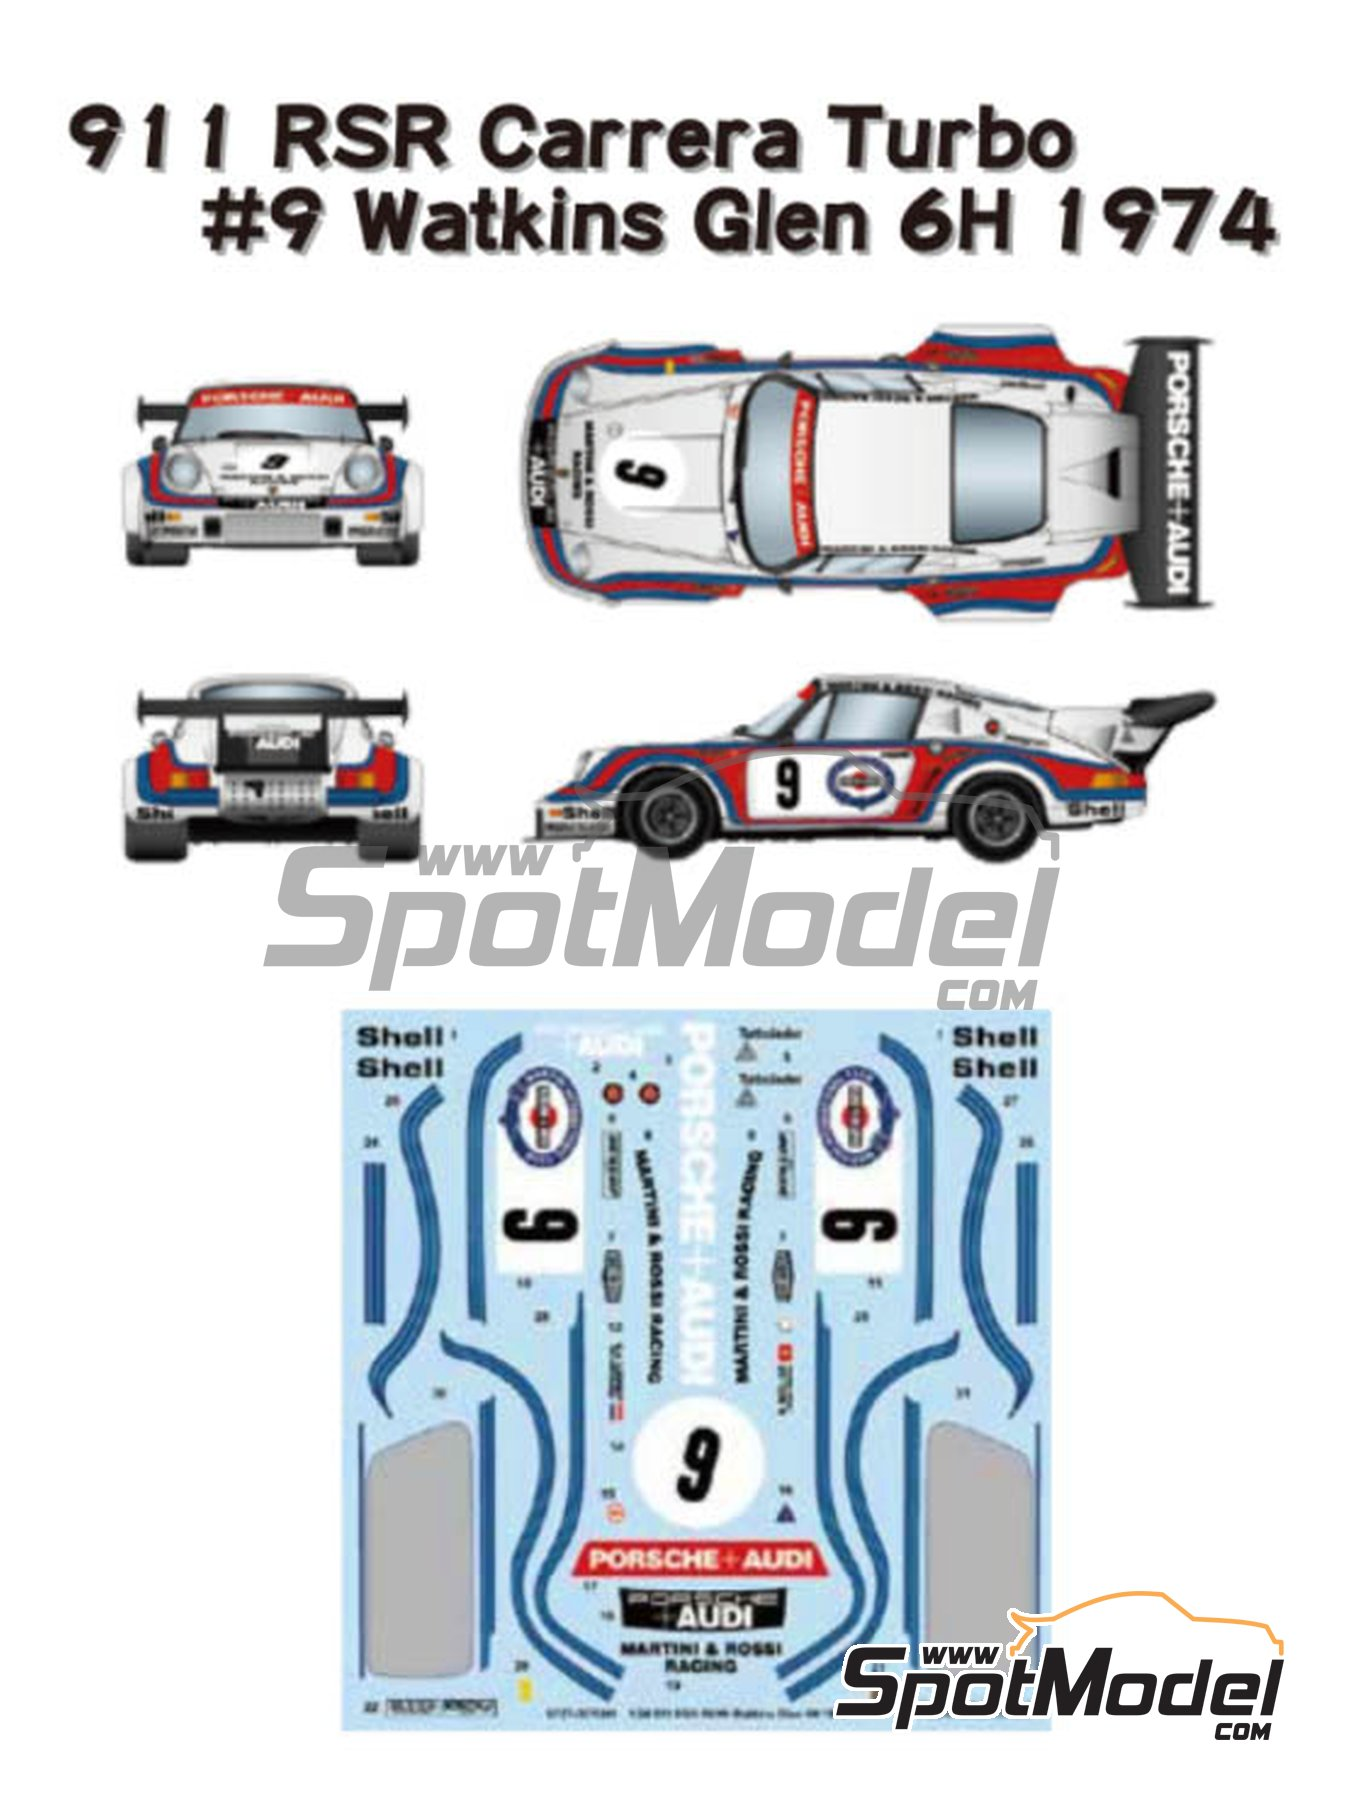 Porsche 911 Carrera RSR Turbo Martini Rossi Porsche Audi - Watkins Glen 6 Hours 1974 | Marking / livery in 1/24 scale manufactured by Studio27 (ref. ST27-DC1205) image